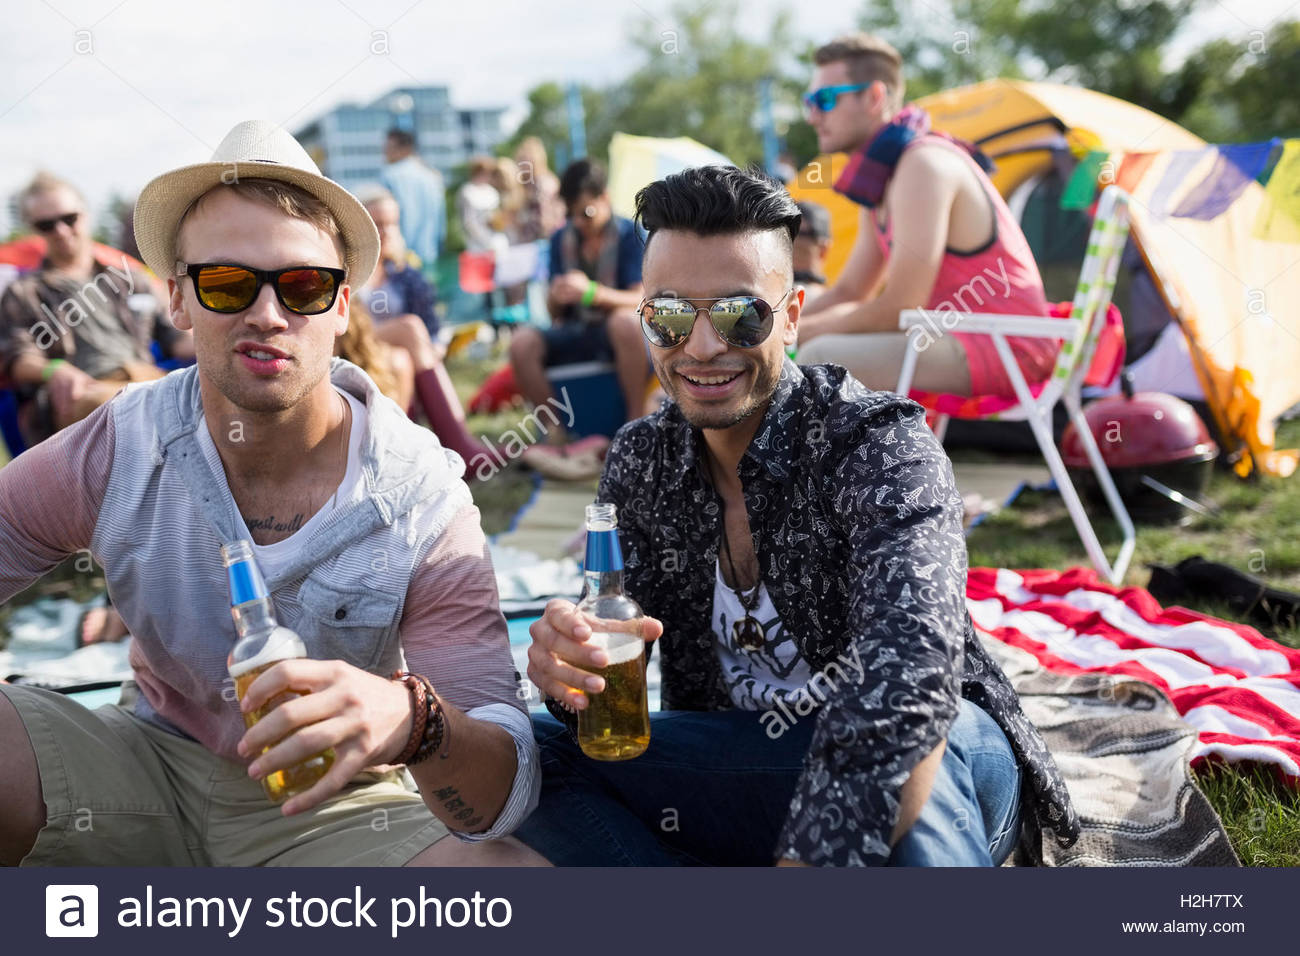 Portrait young men drinking beer at summer music festival campsite - Stock Image